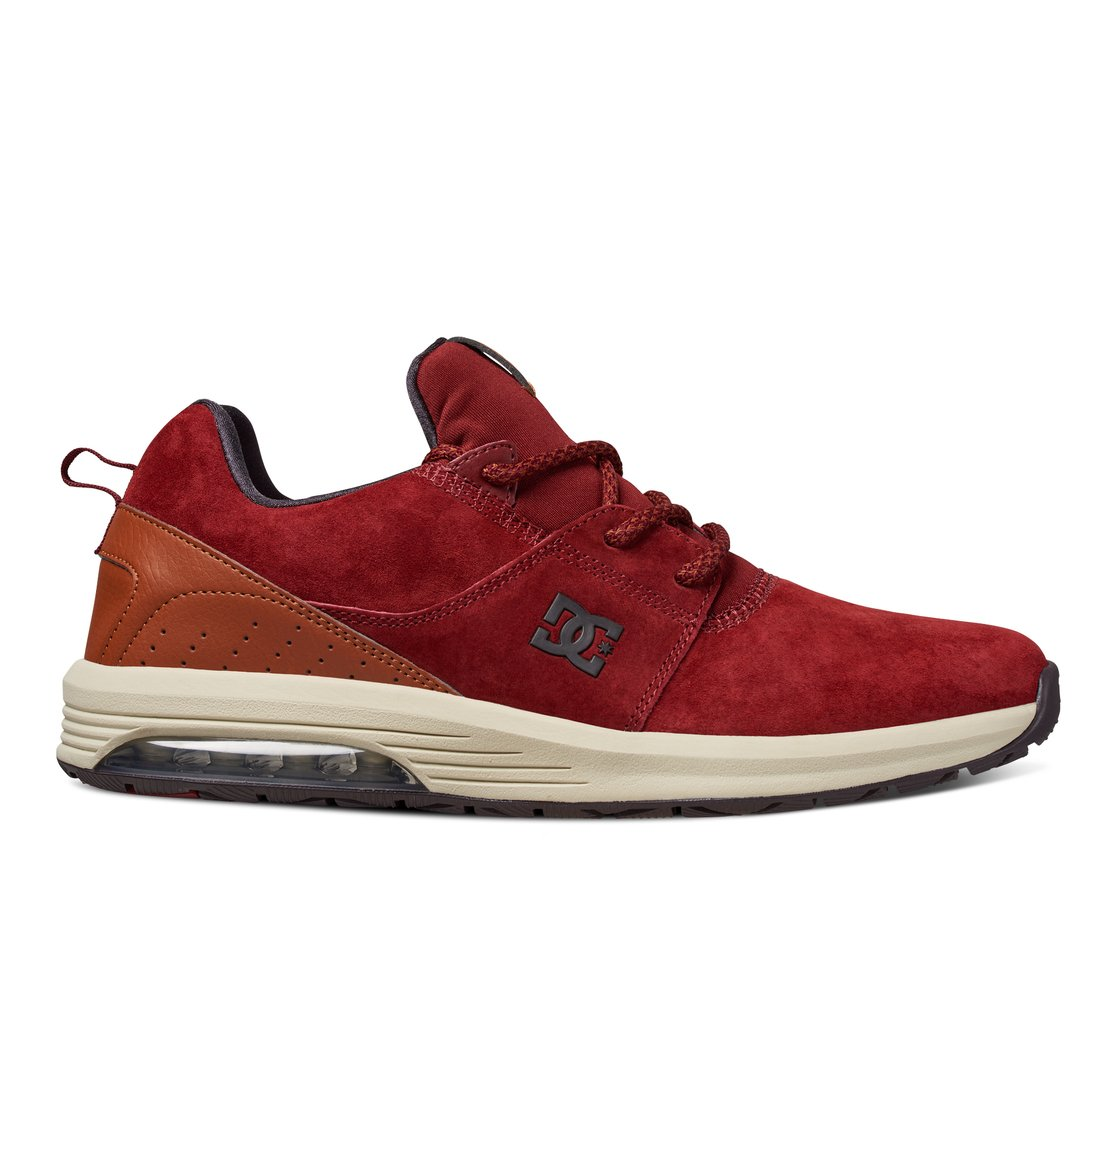 DC SHOES Heathrow Chaussure Homme - Taille 40.5 - ROUGE